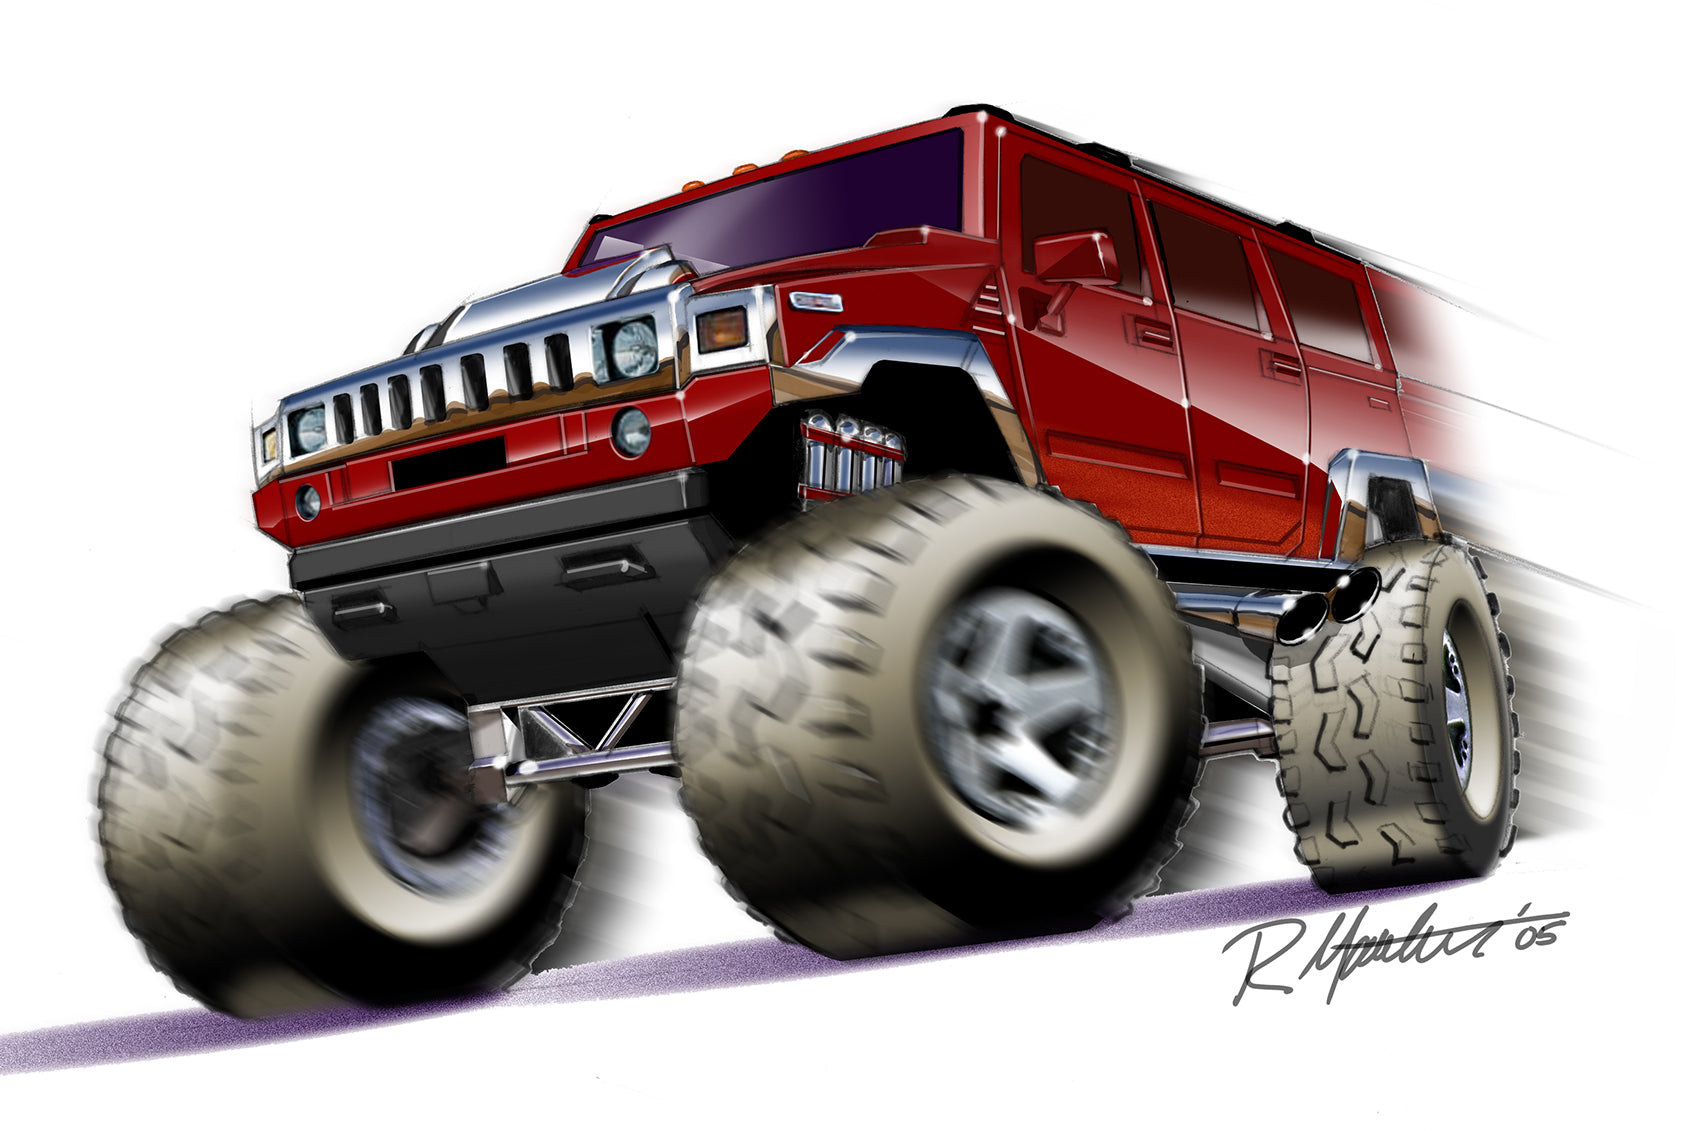 Hummer H2 basic car for Hot Wheels